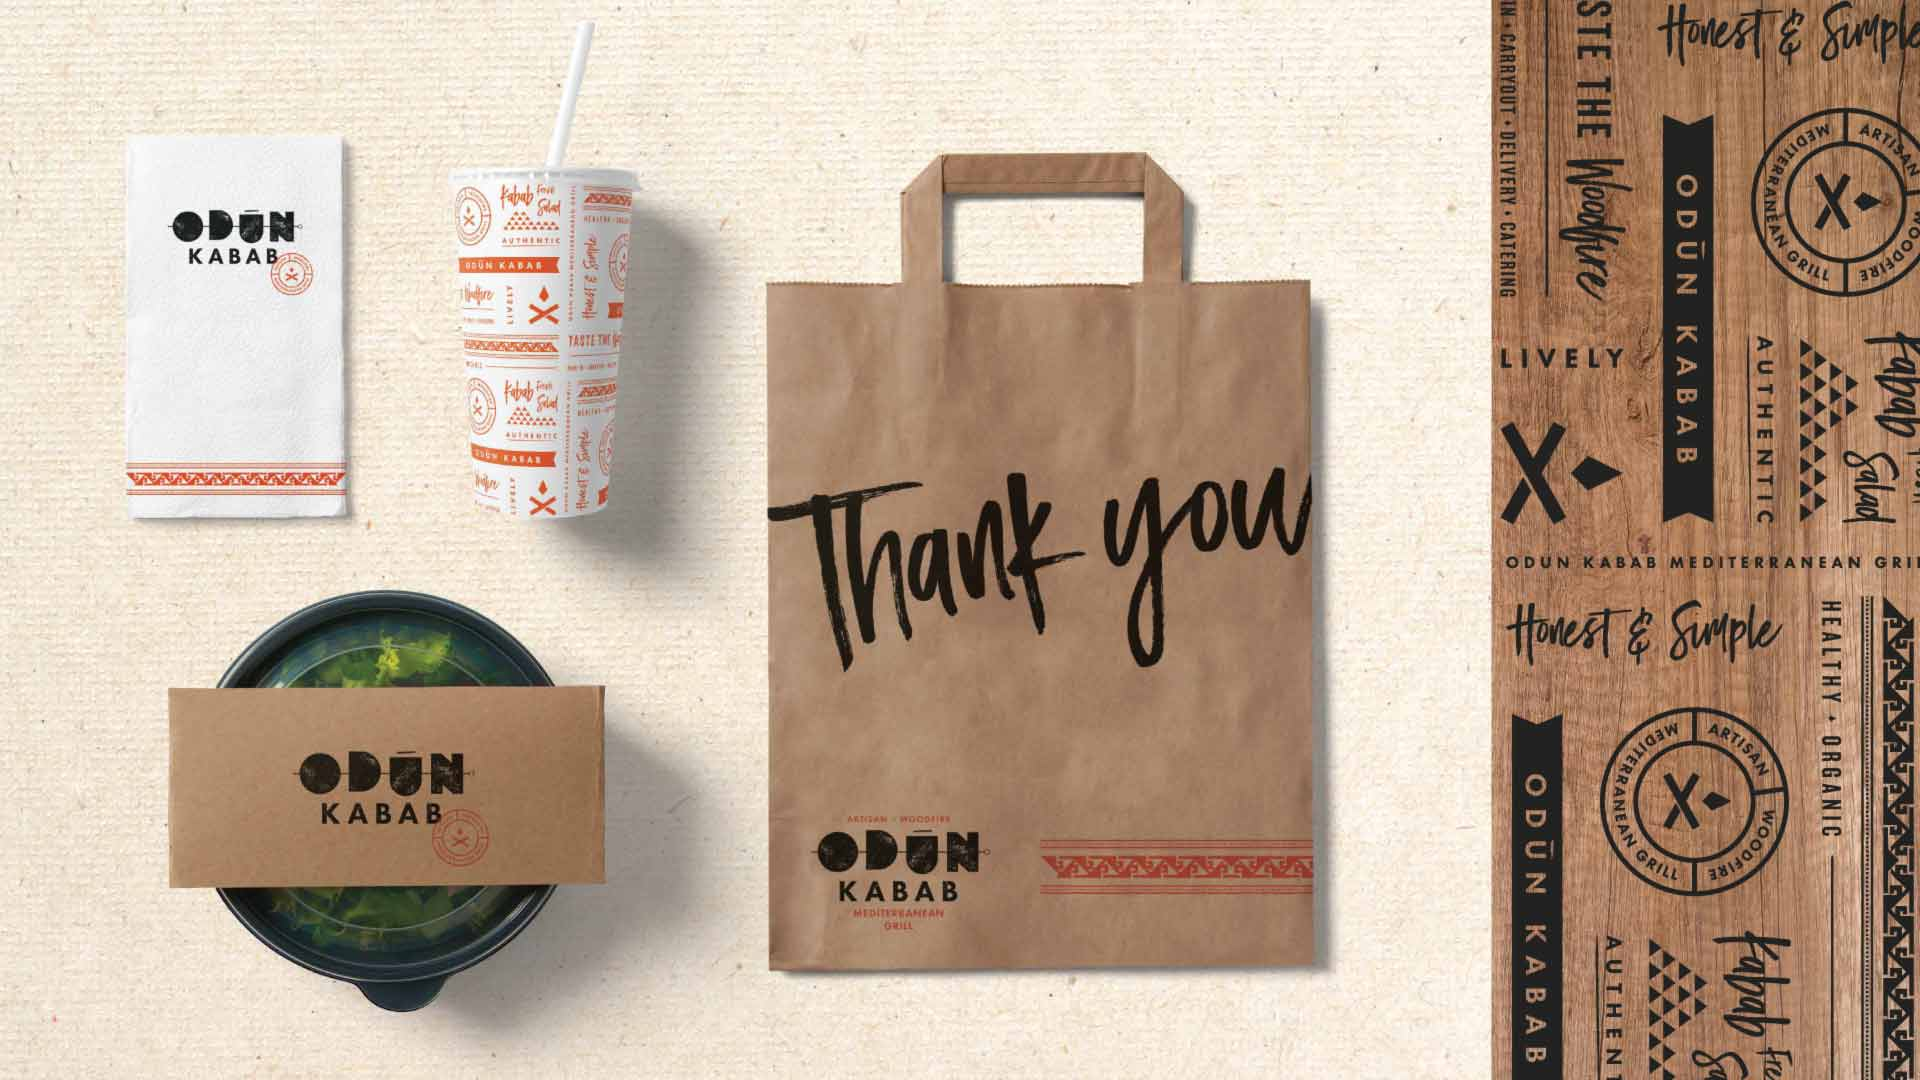 mediterranean-restaurant-togo-packaging